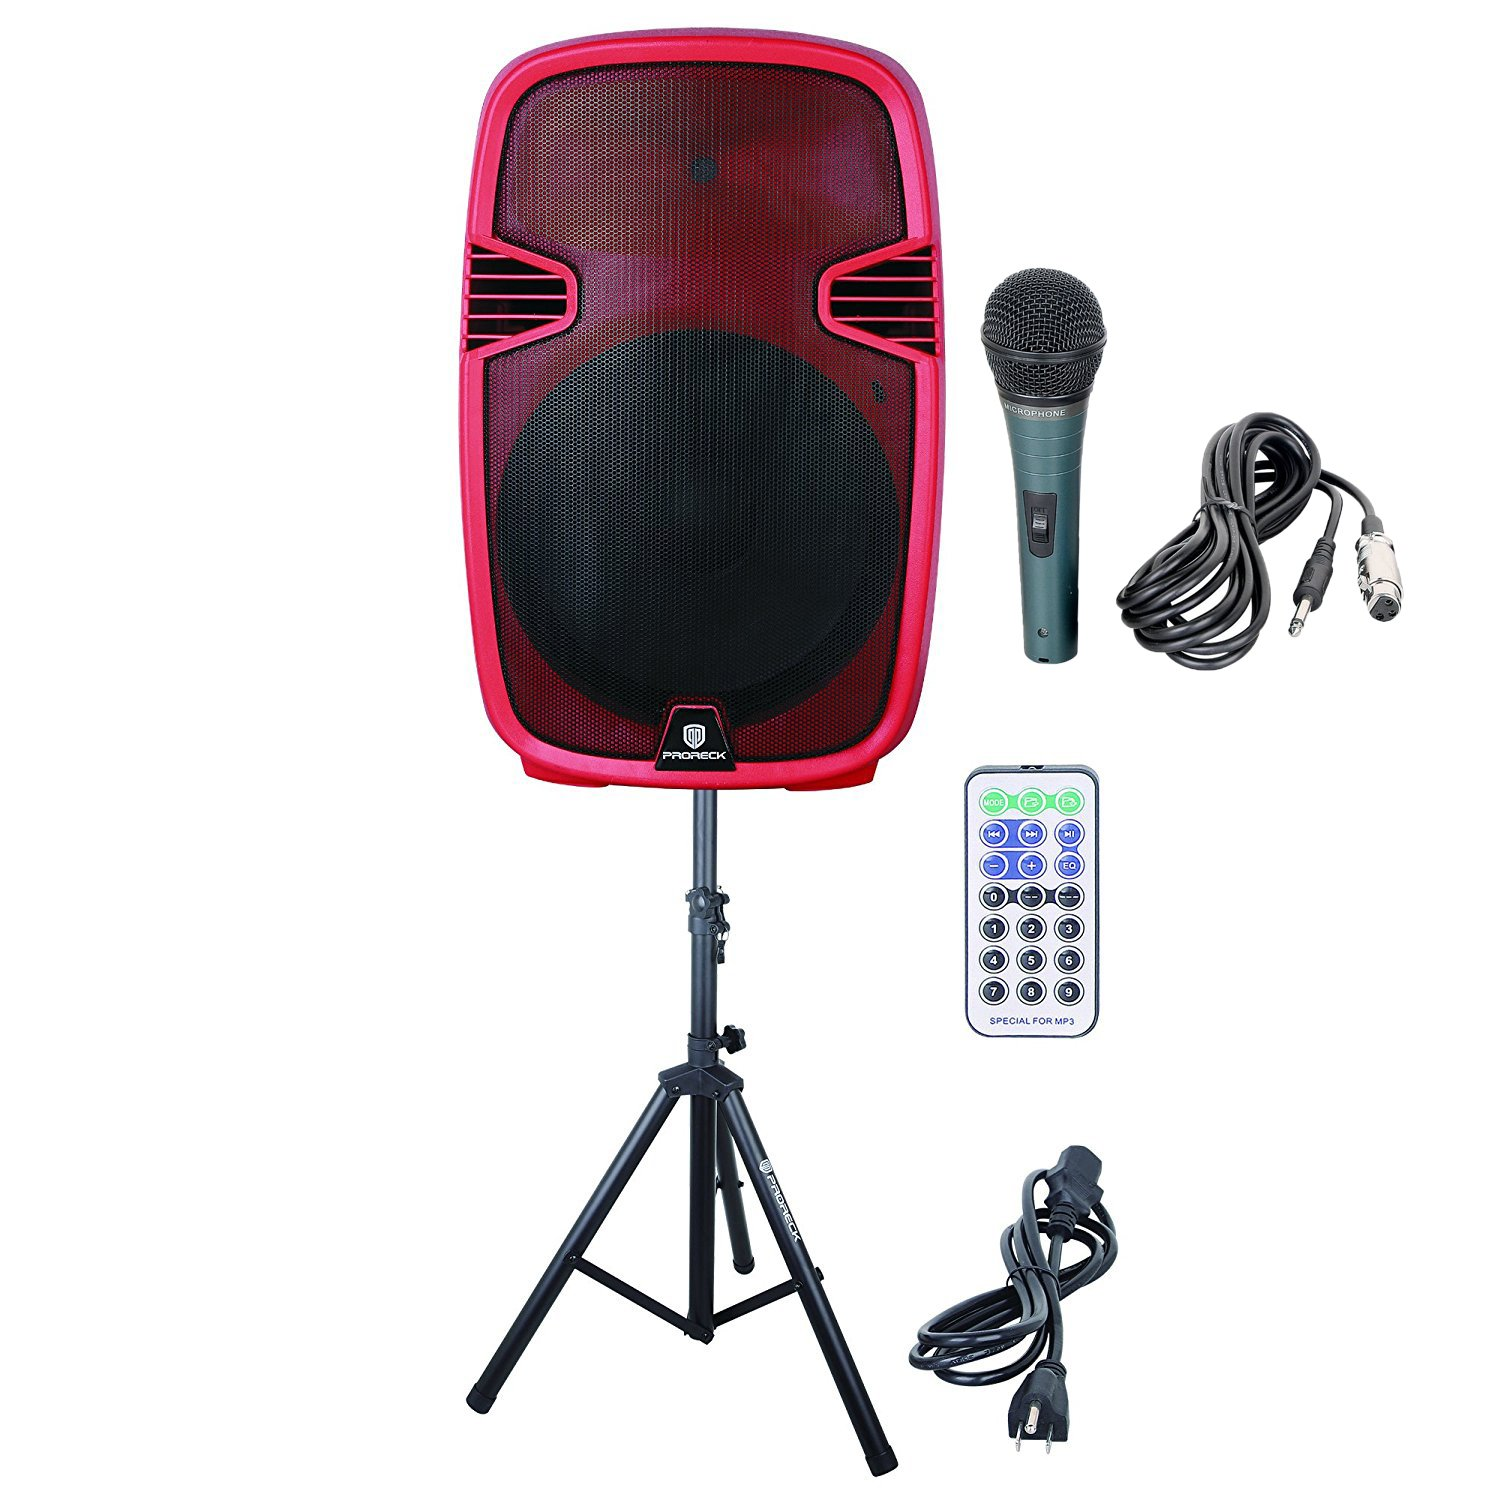 PRORECK PR-C15 Portable 15-inch 600 Watt 2-way Powered Dj/PA Speaker with Bluetooth/USB/SD Card Reader/ FM Radio/Remote Control/LED Light/Speaker Stand,Wired Microphone, Red